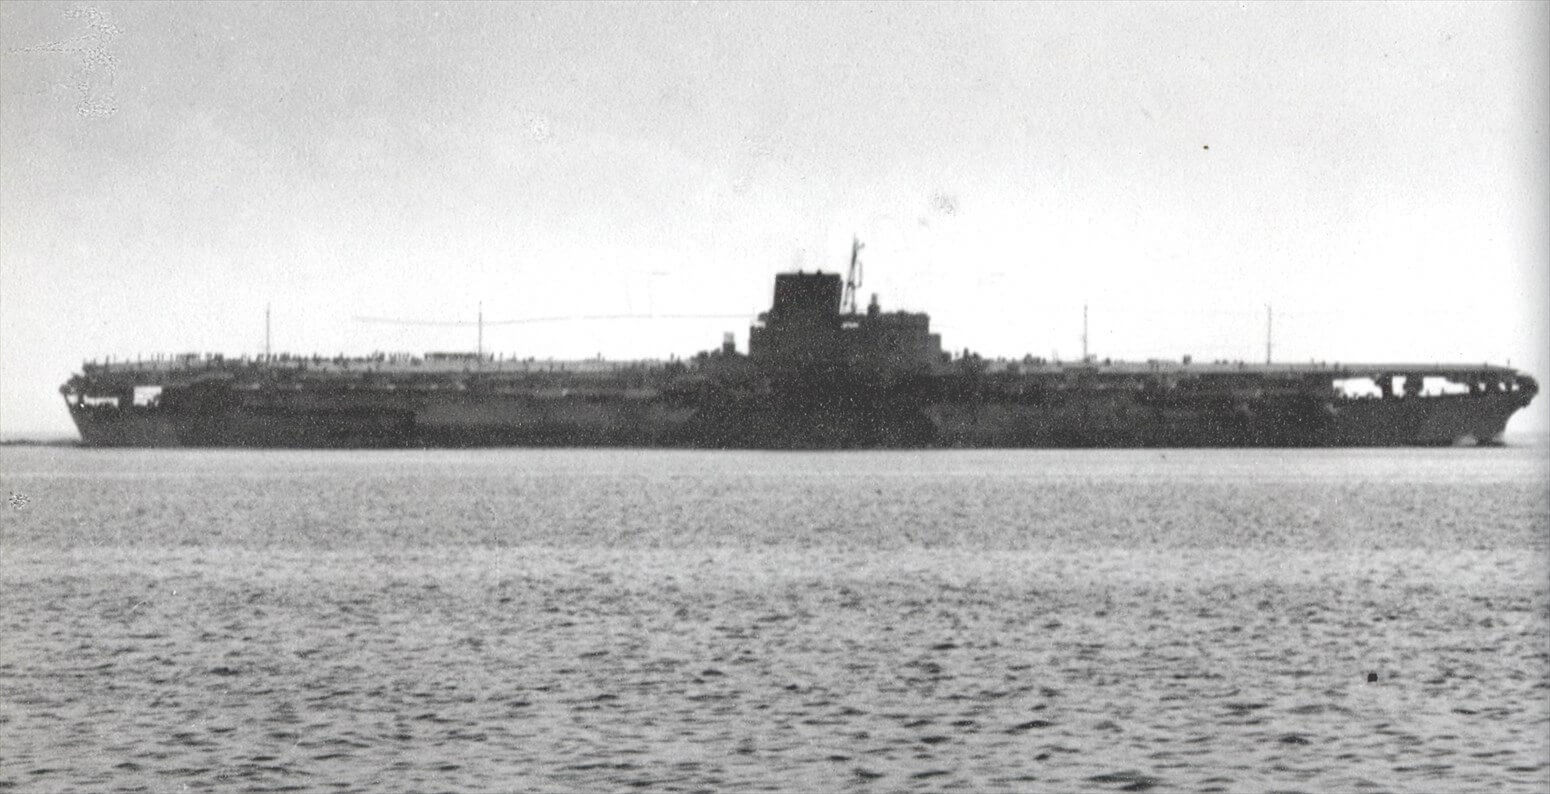 信濃【航空母艦】<br><font size=4>SHINANO【Aircraft carrier】</font>